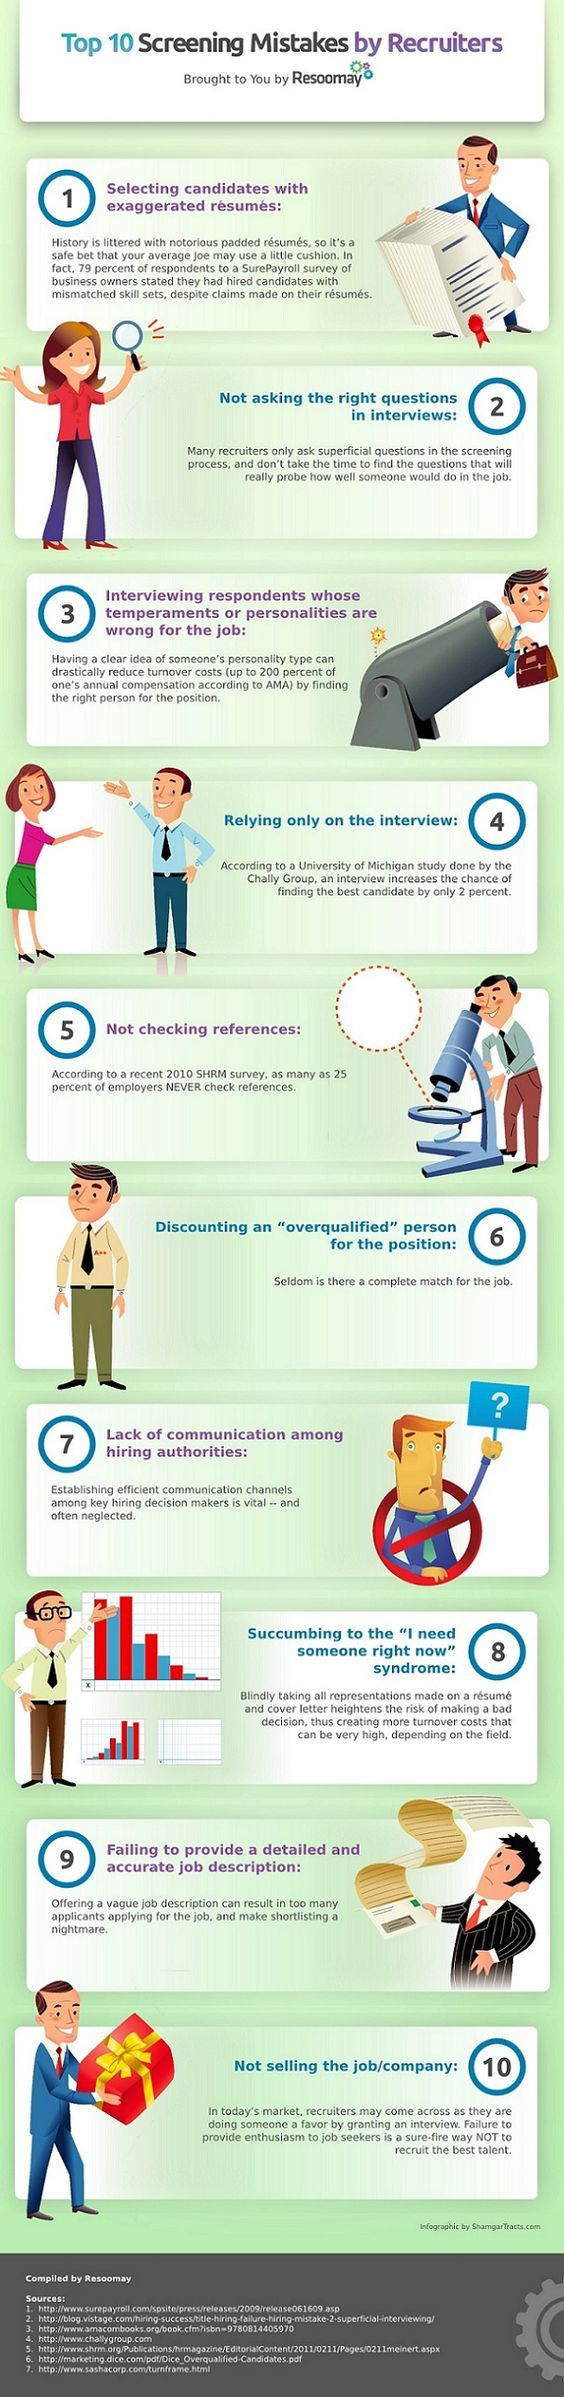 11 Best Work Images On Pinterest Career Advice Resume Tips And